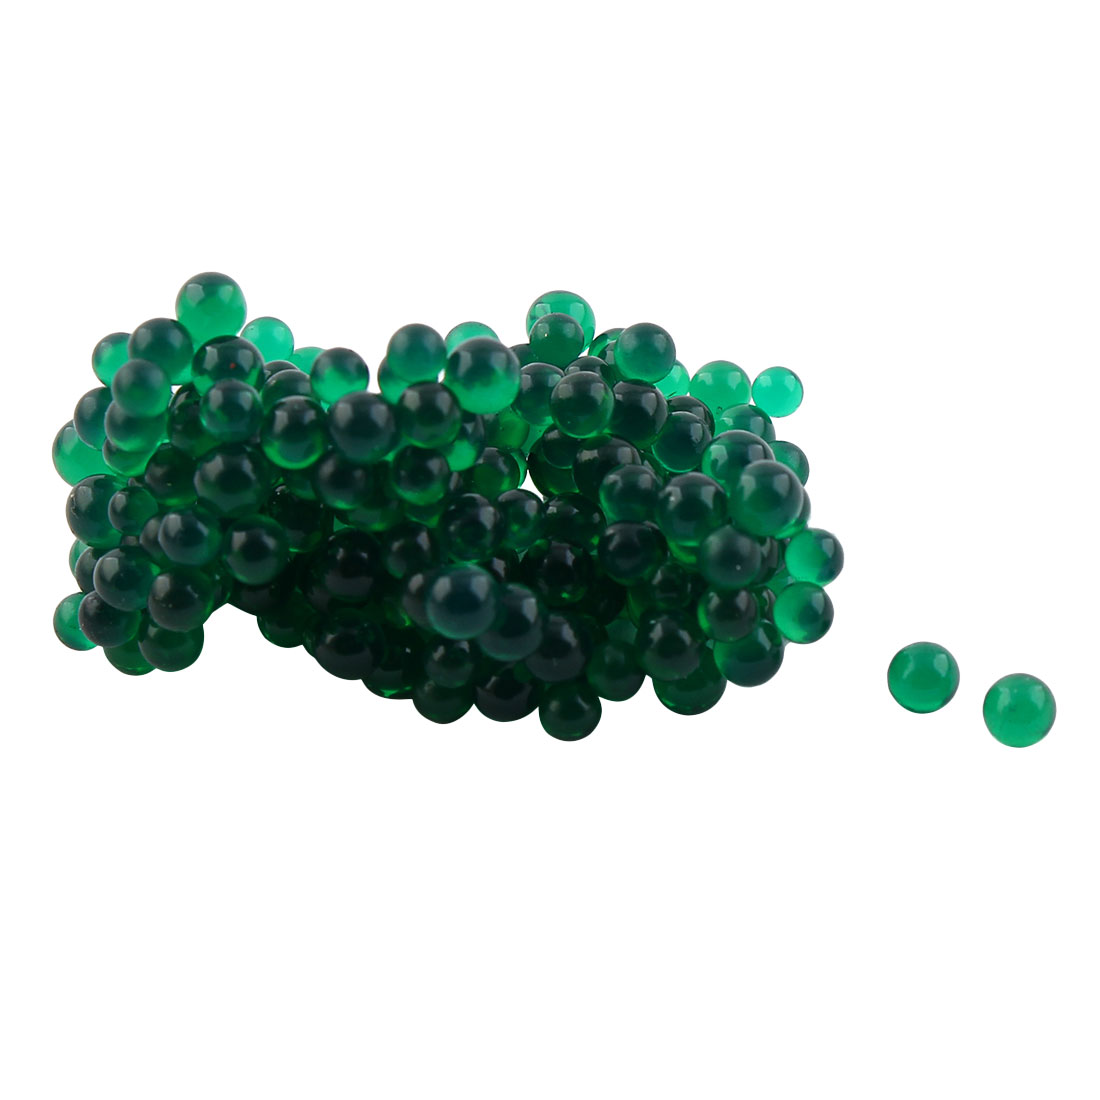 Green Crystal Mud Decorative Water Gel Beads 5 Bags